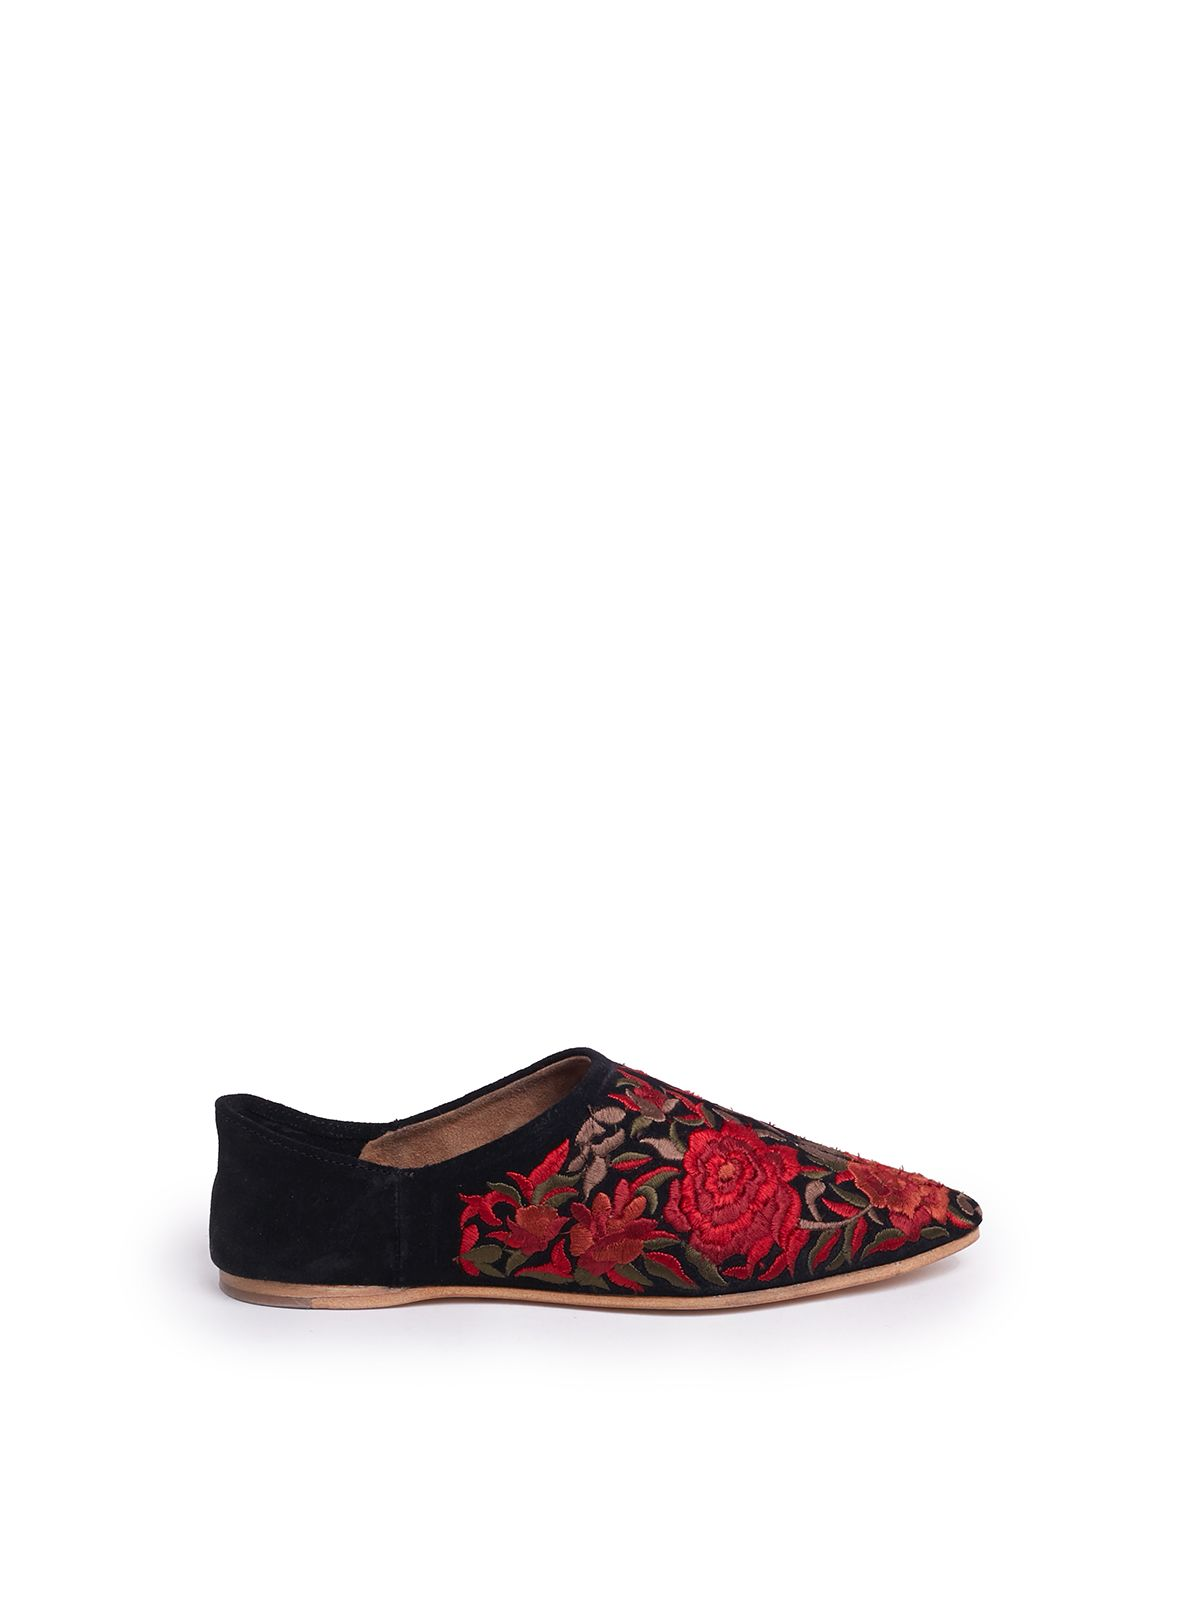 Jeffrey Campbell Embroidered Floral Slippers